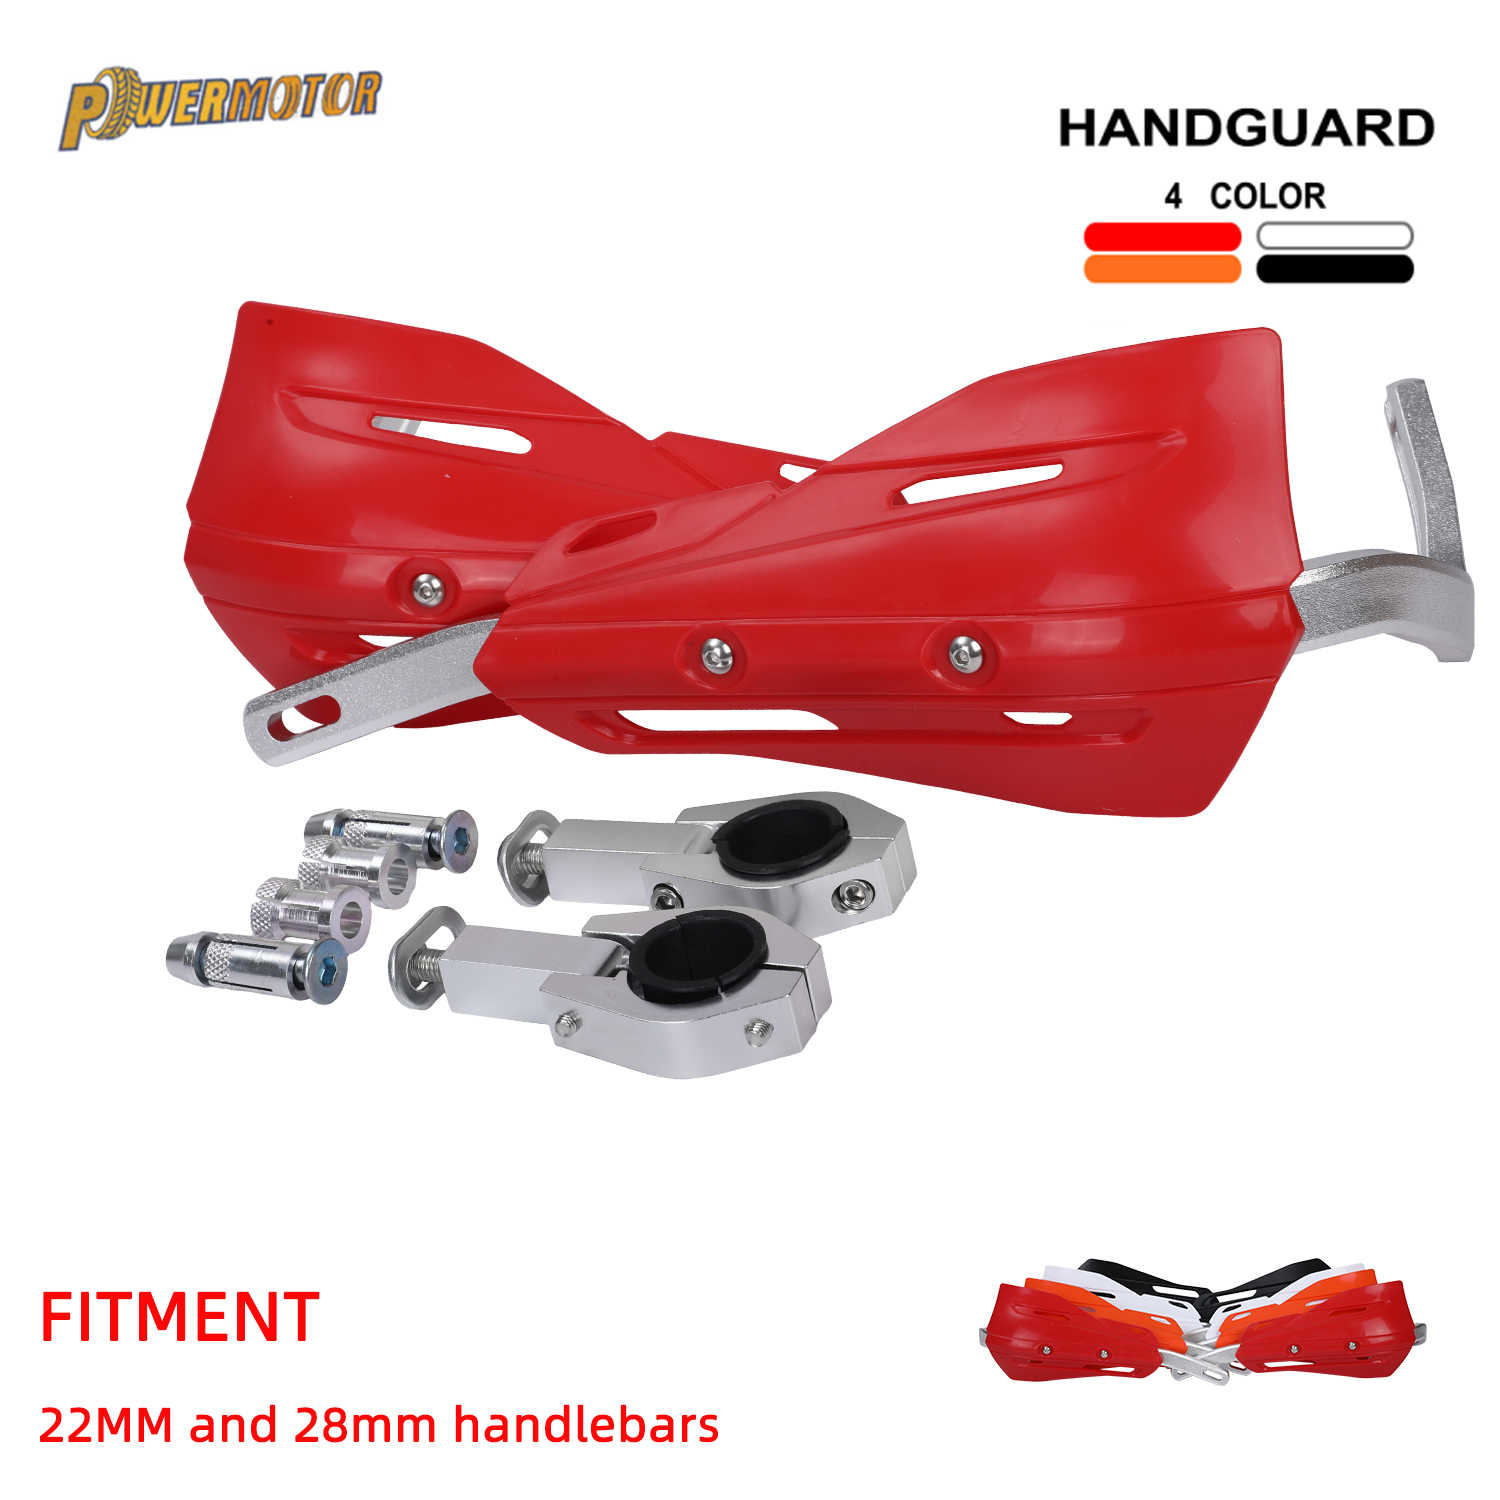 22 Mm 28 Mm Motorcycle Handguards Hand Guards Voor Cr Crf Yzf Kxf Rmz Kayo Bse Ktm Dirt Bike Mx motocross Enduro Supermoto Off Road